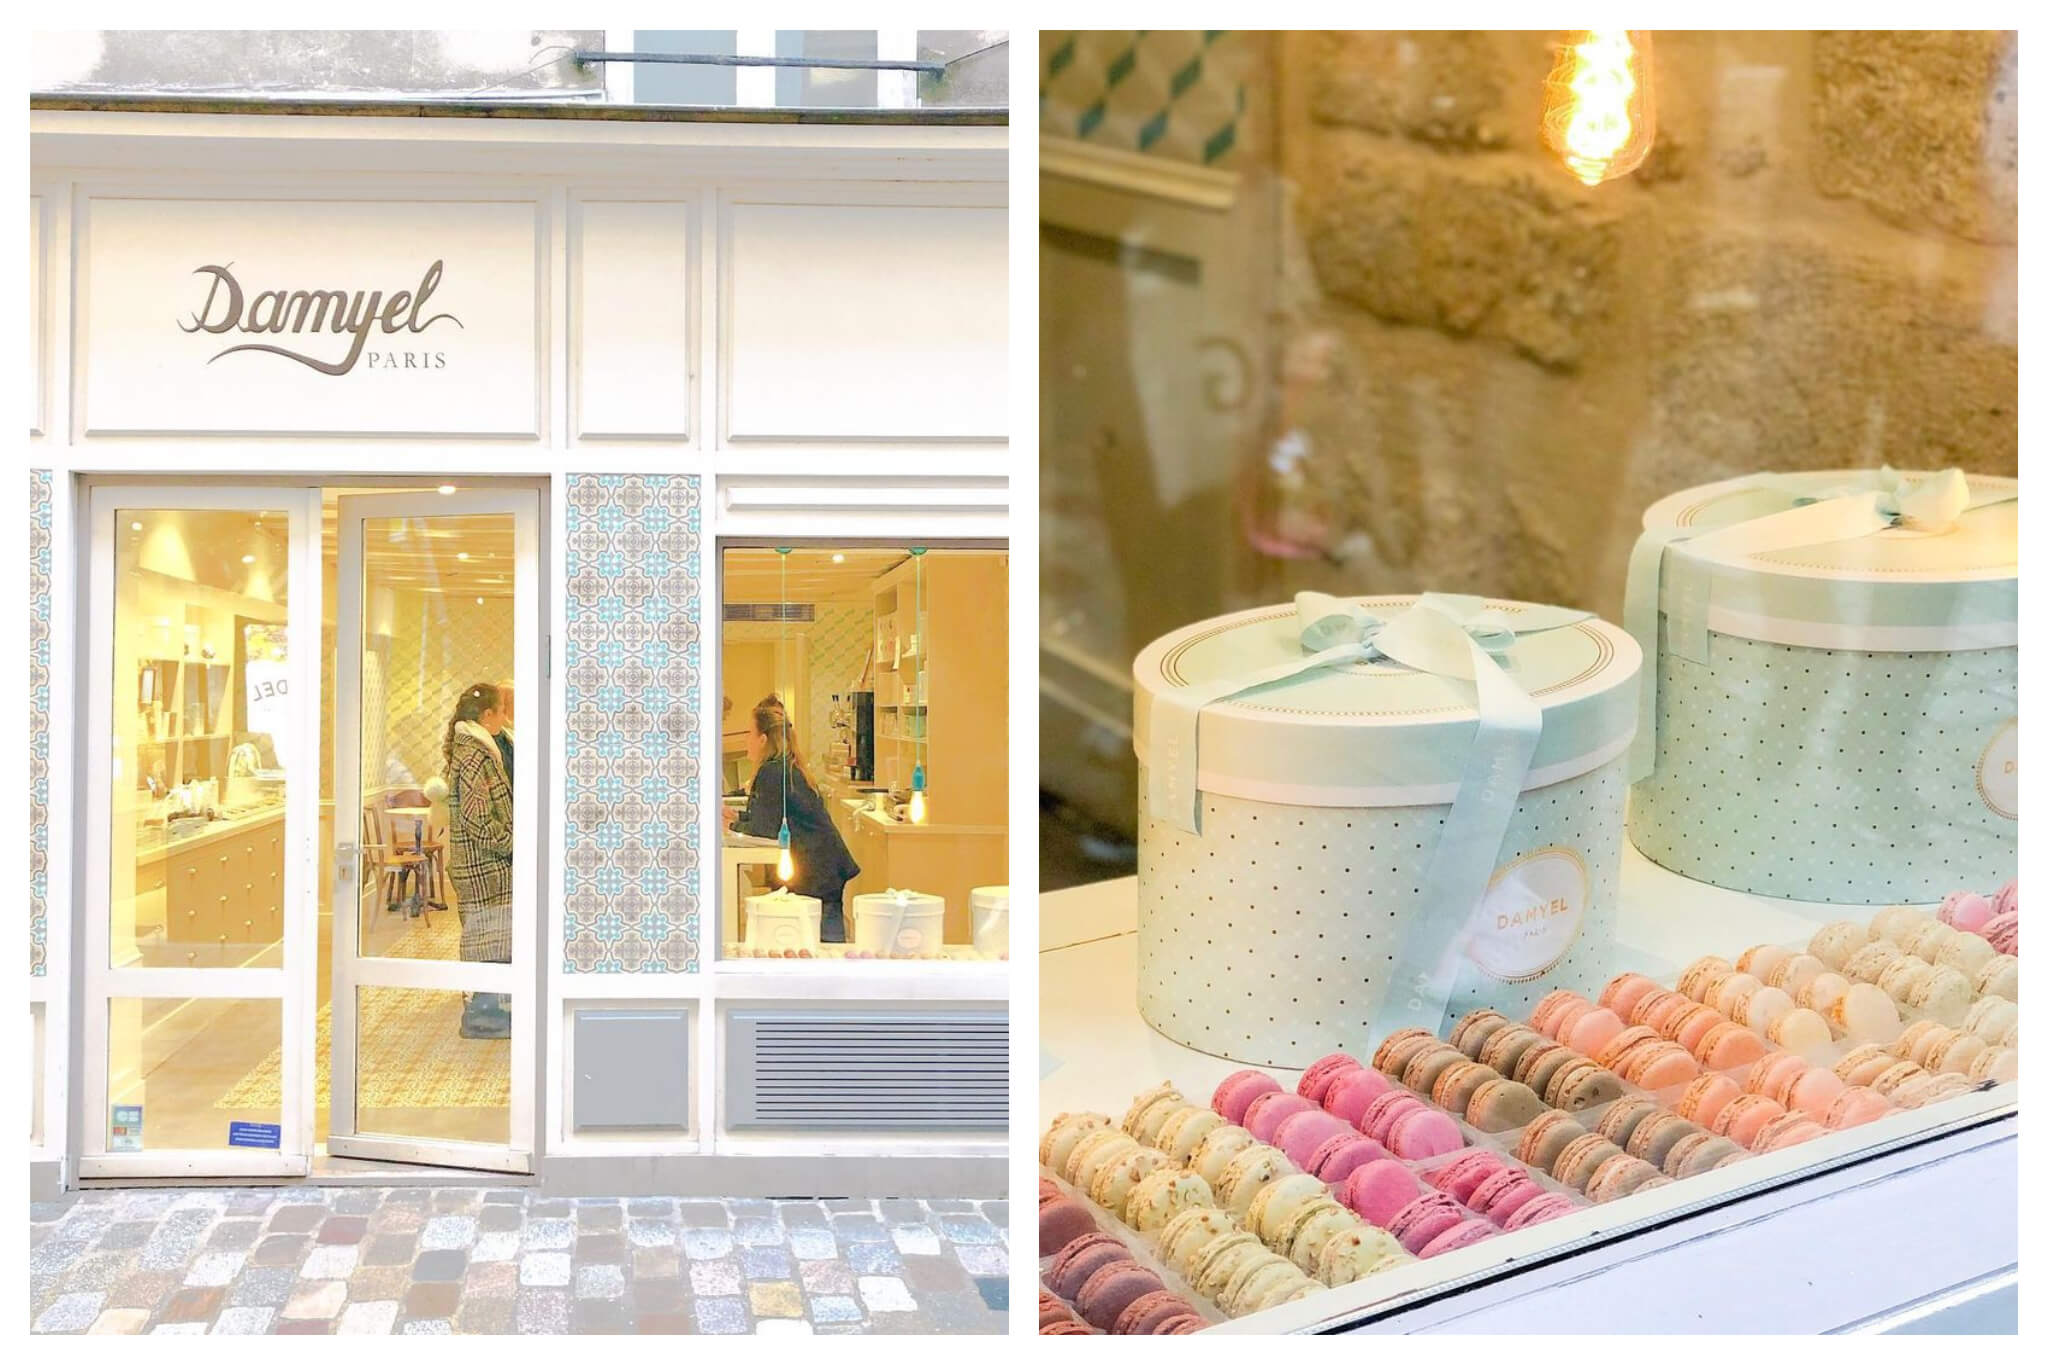 Left: The outside of Damyel in Paris. Right: The window front of Damyel in Paris, with assorted macarons pictured.